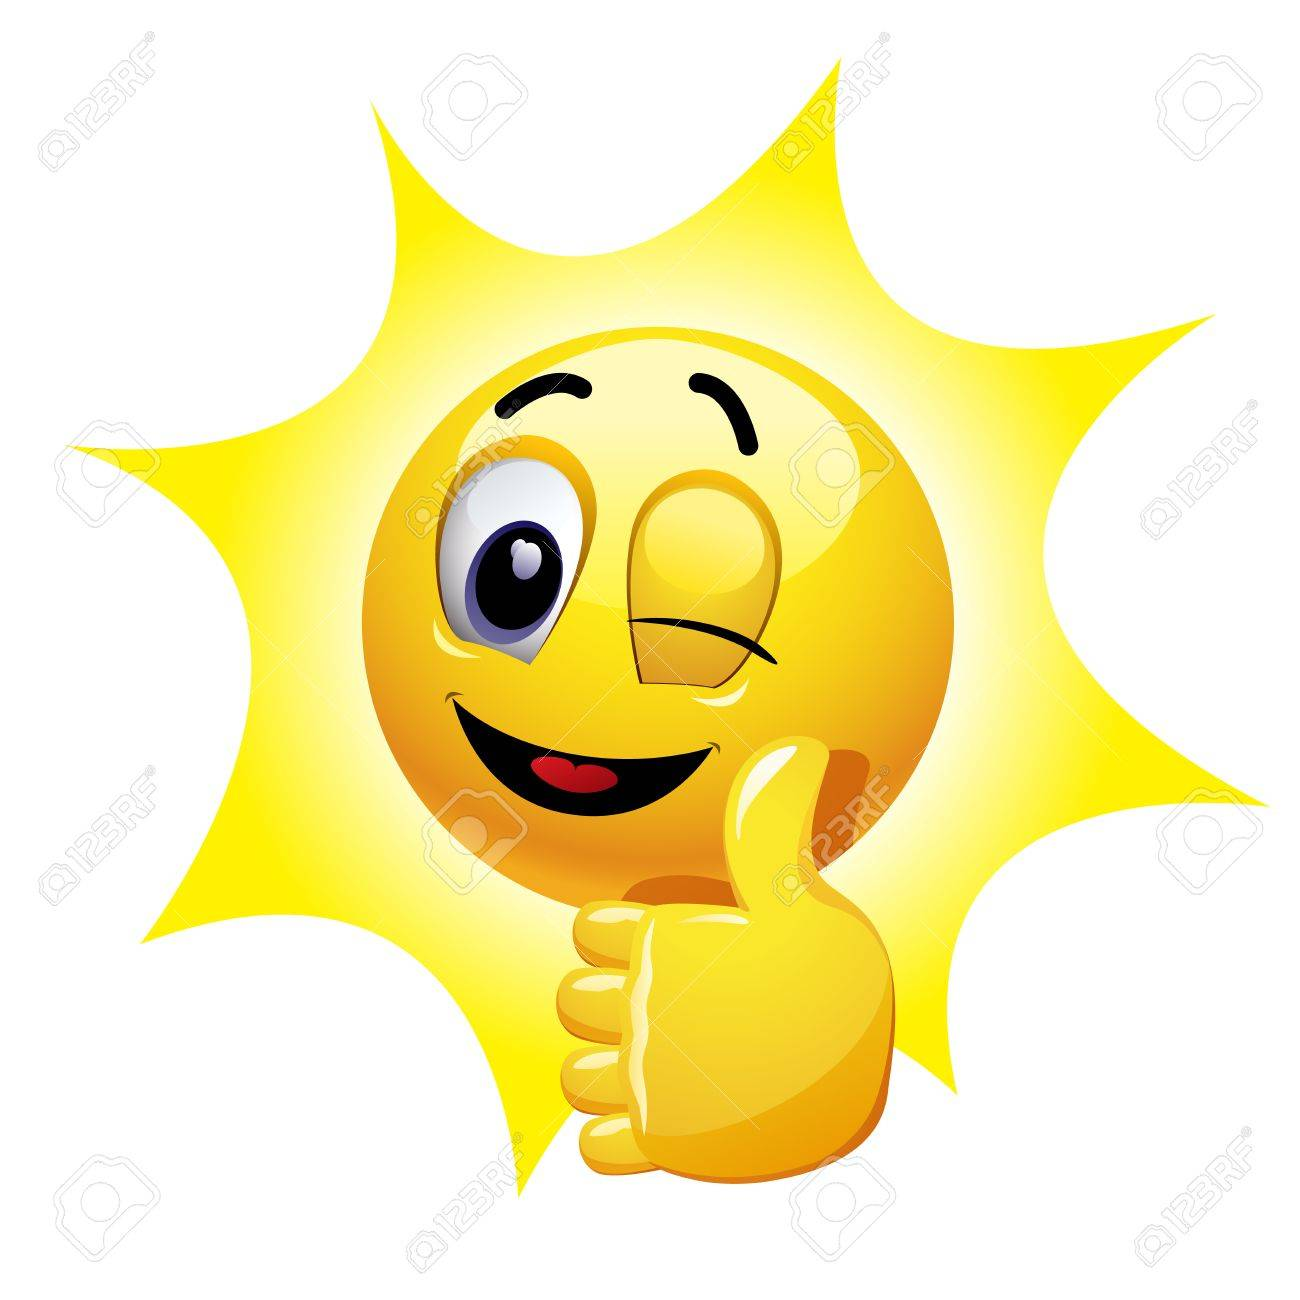 Winking smiley showing thumb up. Emoticon thumbs up showing positive mood. - 82766168